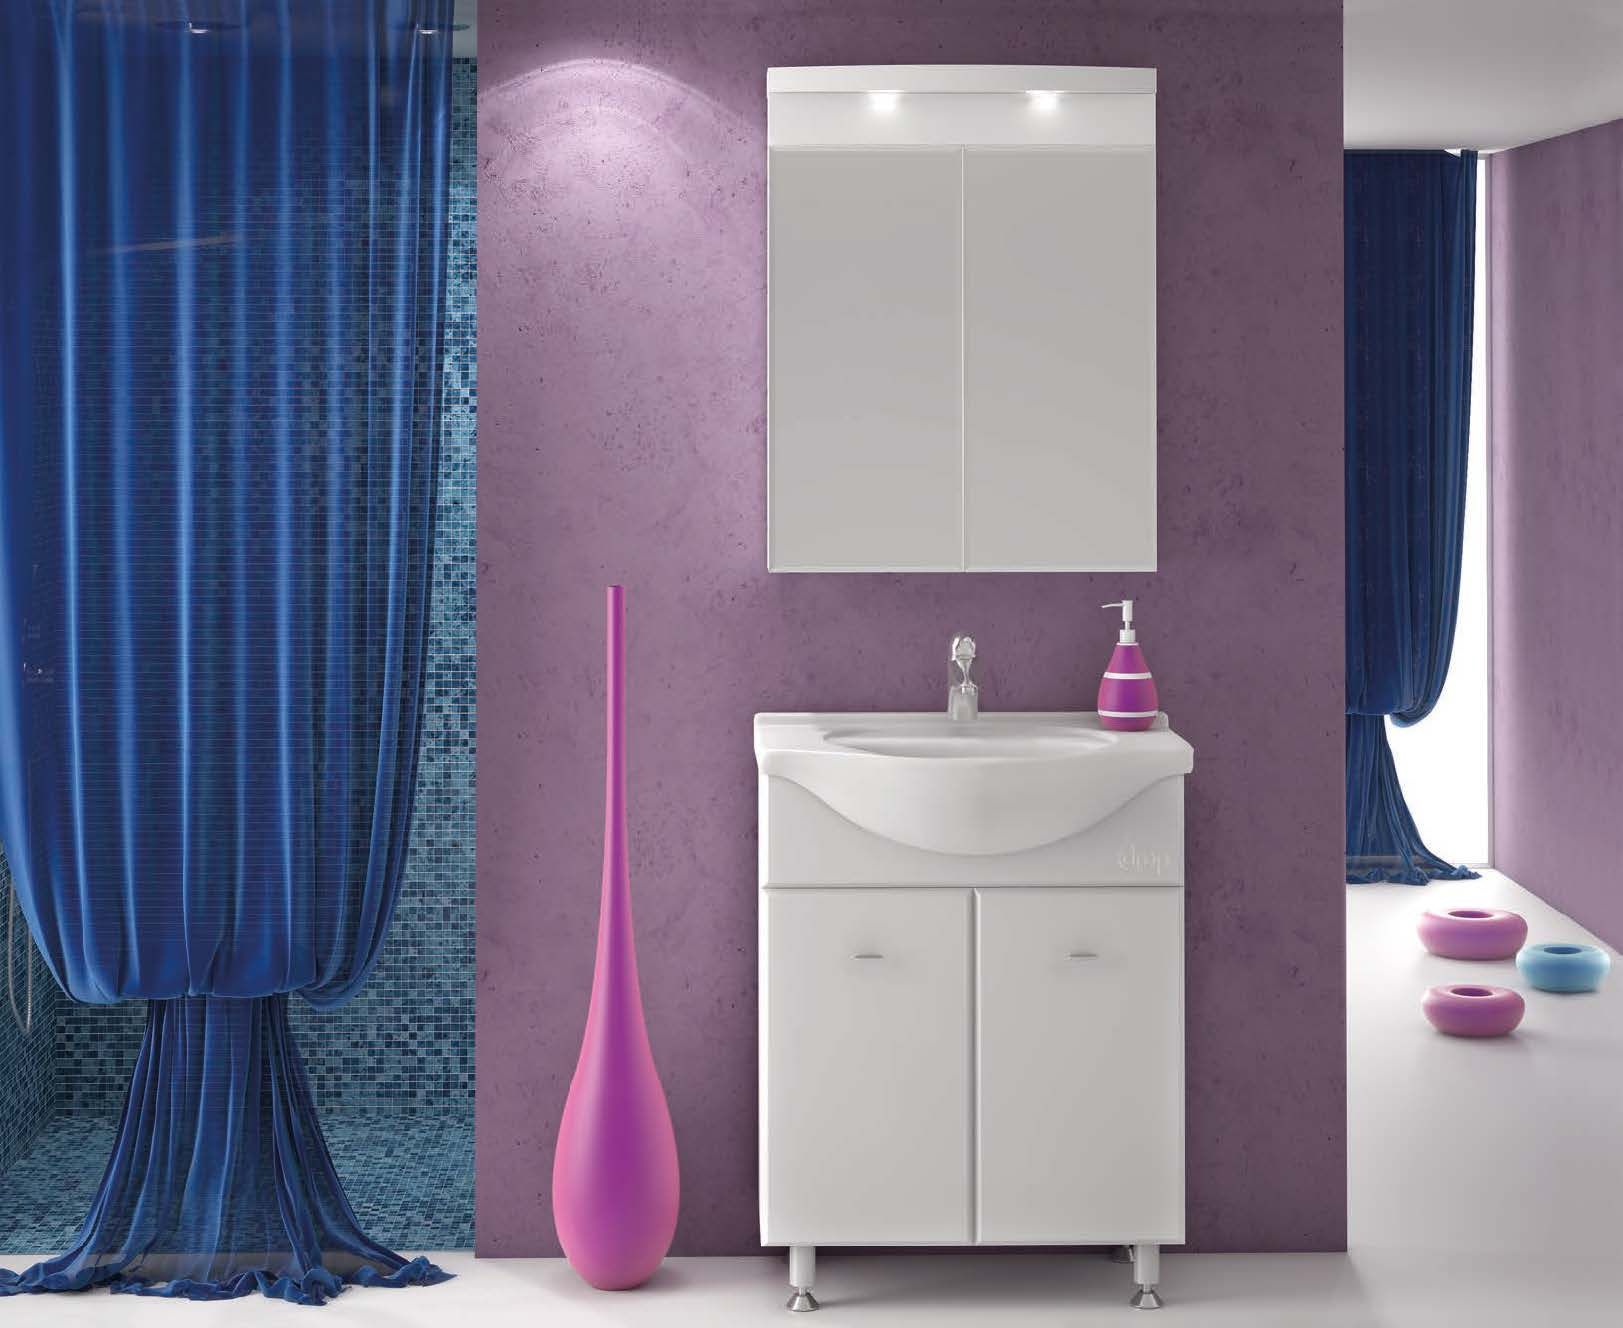 http://modabania.com/clients/220/images/catalog/products/77092871ee560ff9_estell65.jpg